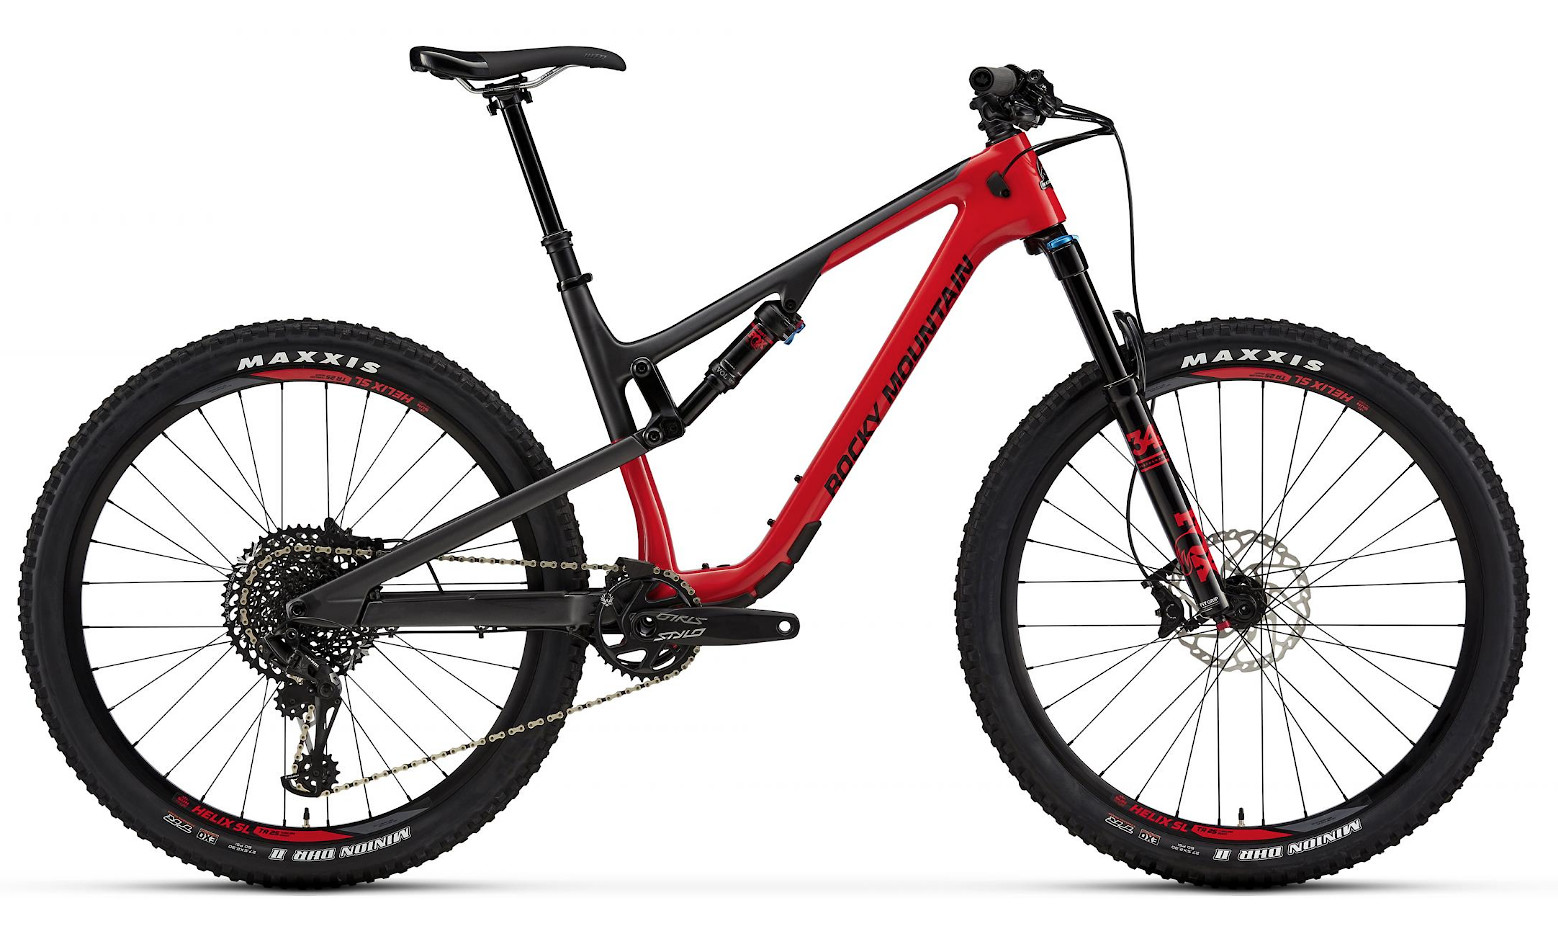 2019 Rocky Mountain Thunderbolt Carbon 50 - Red and gray